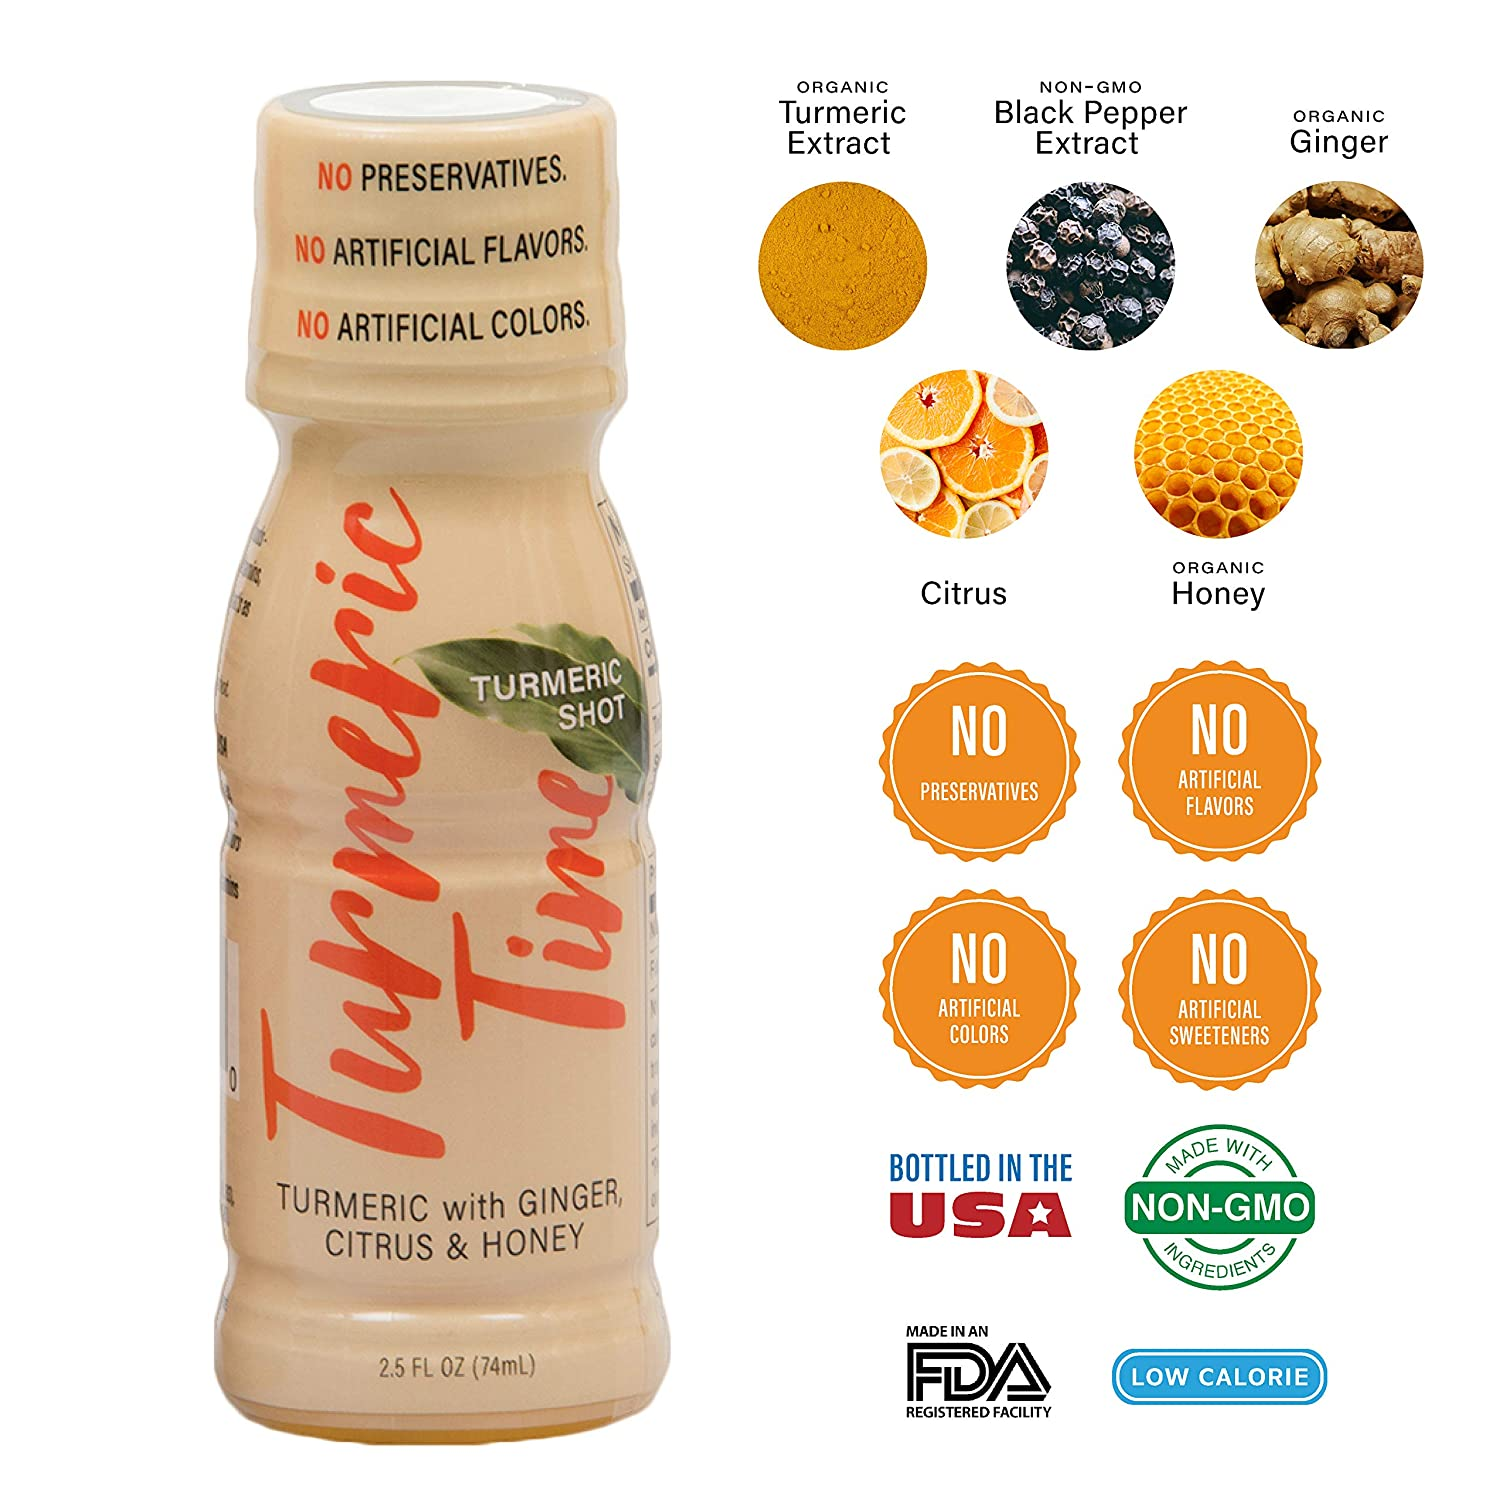 Turmeric Time Turmeric Shots – Turmeric with Ginger, Citrus Honey Non-GMO No Preservatives or Artificial Flavors Colors Sweeteners B Vitamins Liquid Turmeric 12 Pack